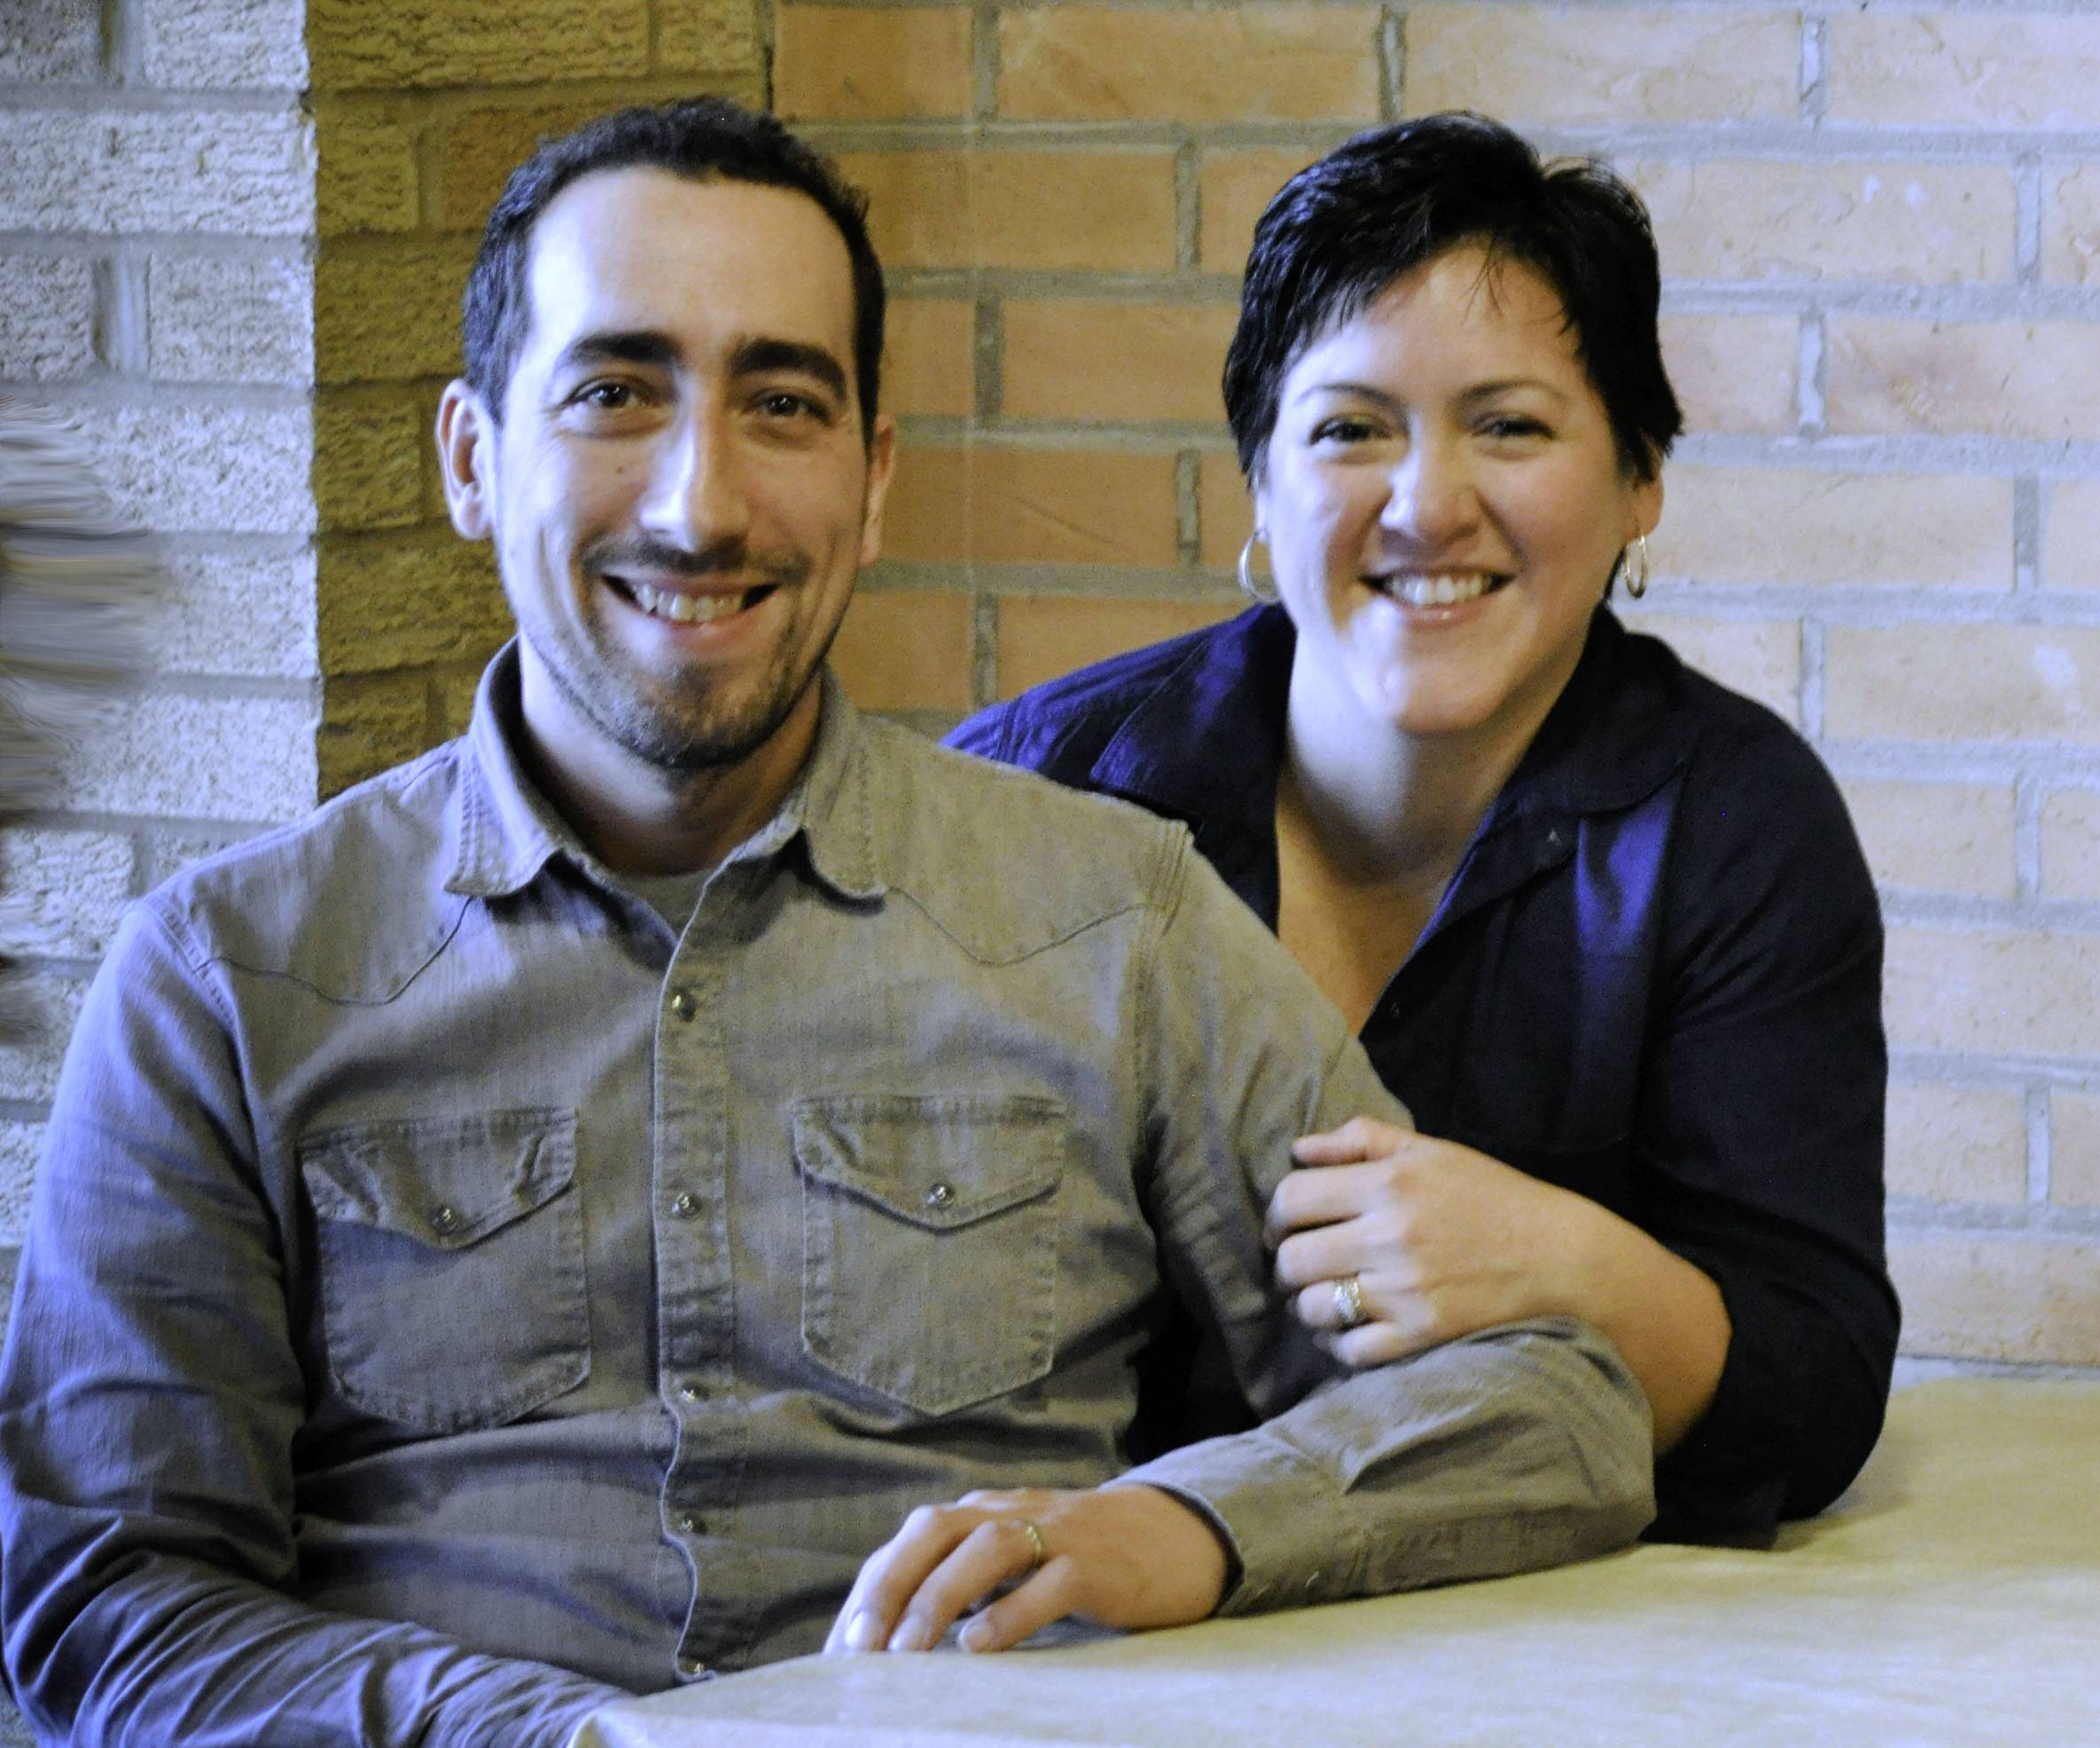 The Park Street Restaurant's new owners are Paul Arroyo and Nora Bellido Arroyo.